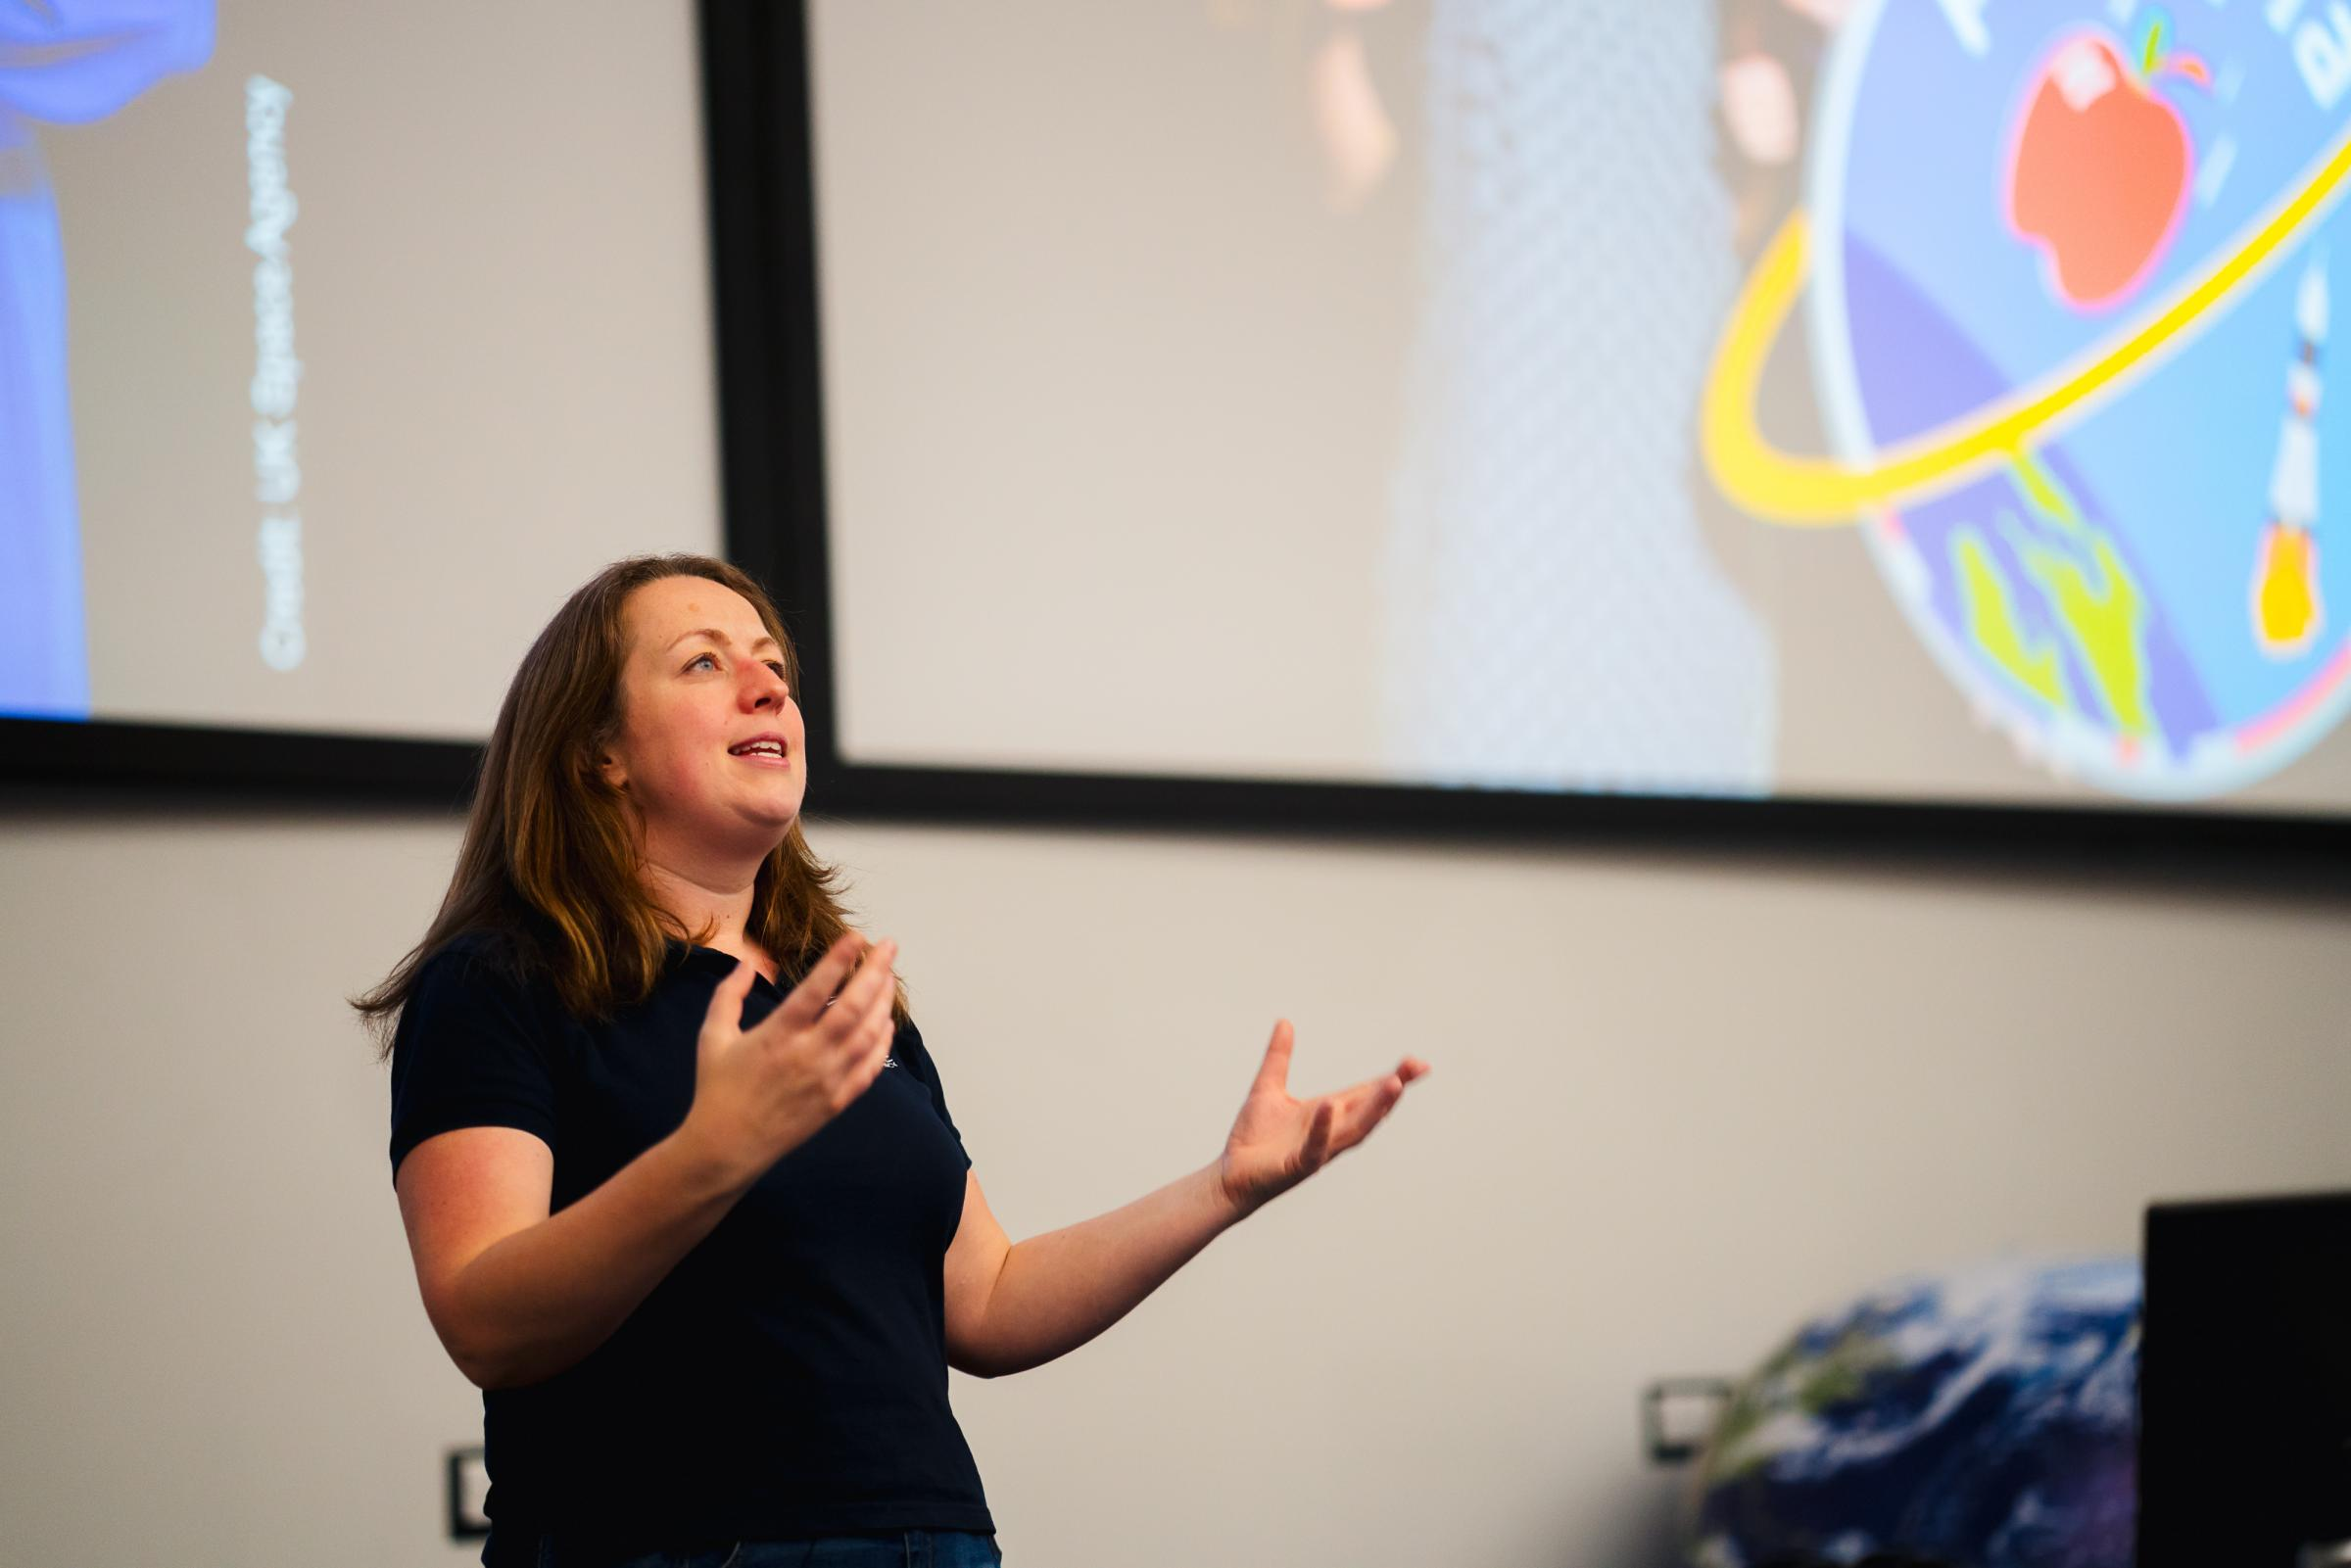 Libby Jackson, the Human Spaceflight and Microgravity Programme Manager at the UK Space Agency